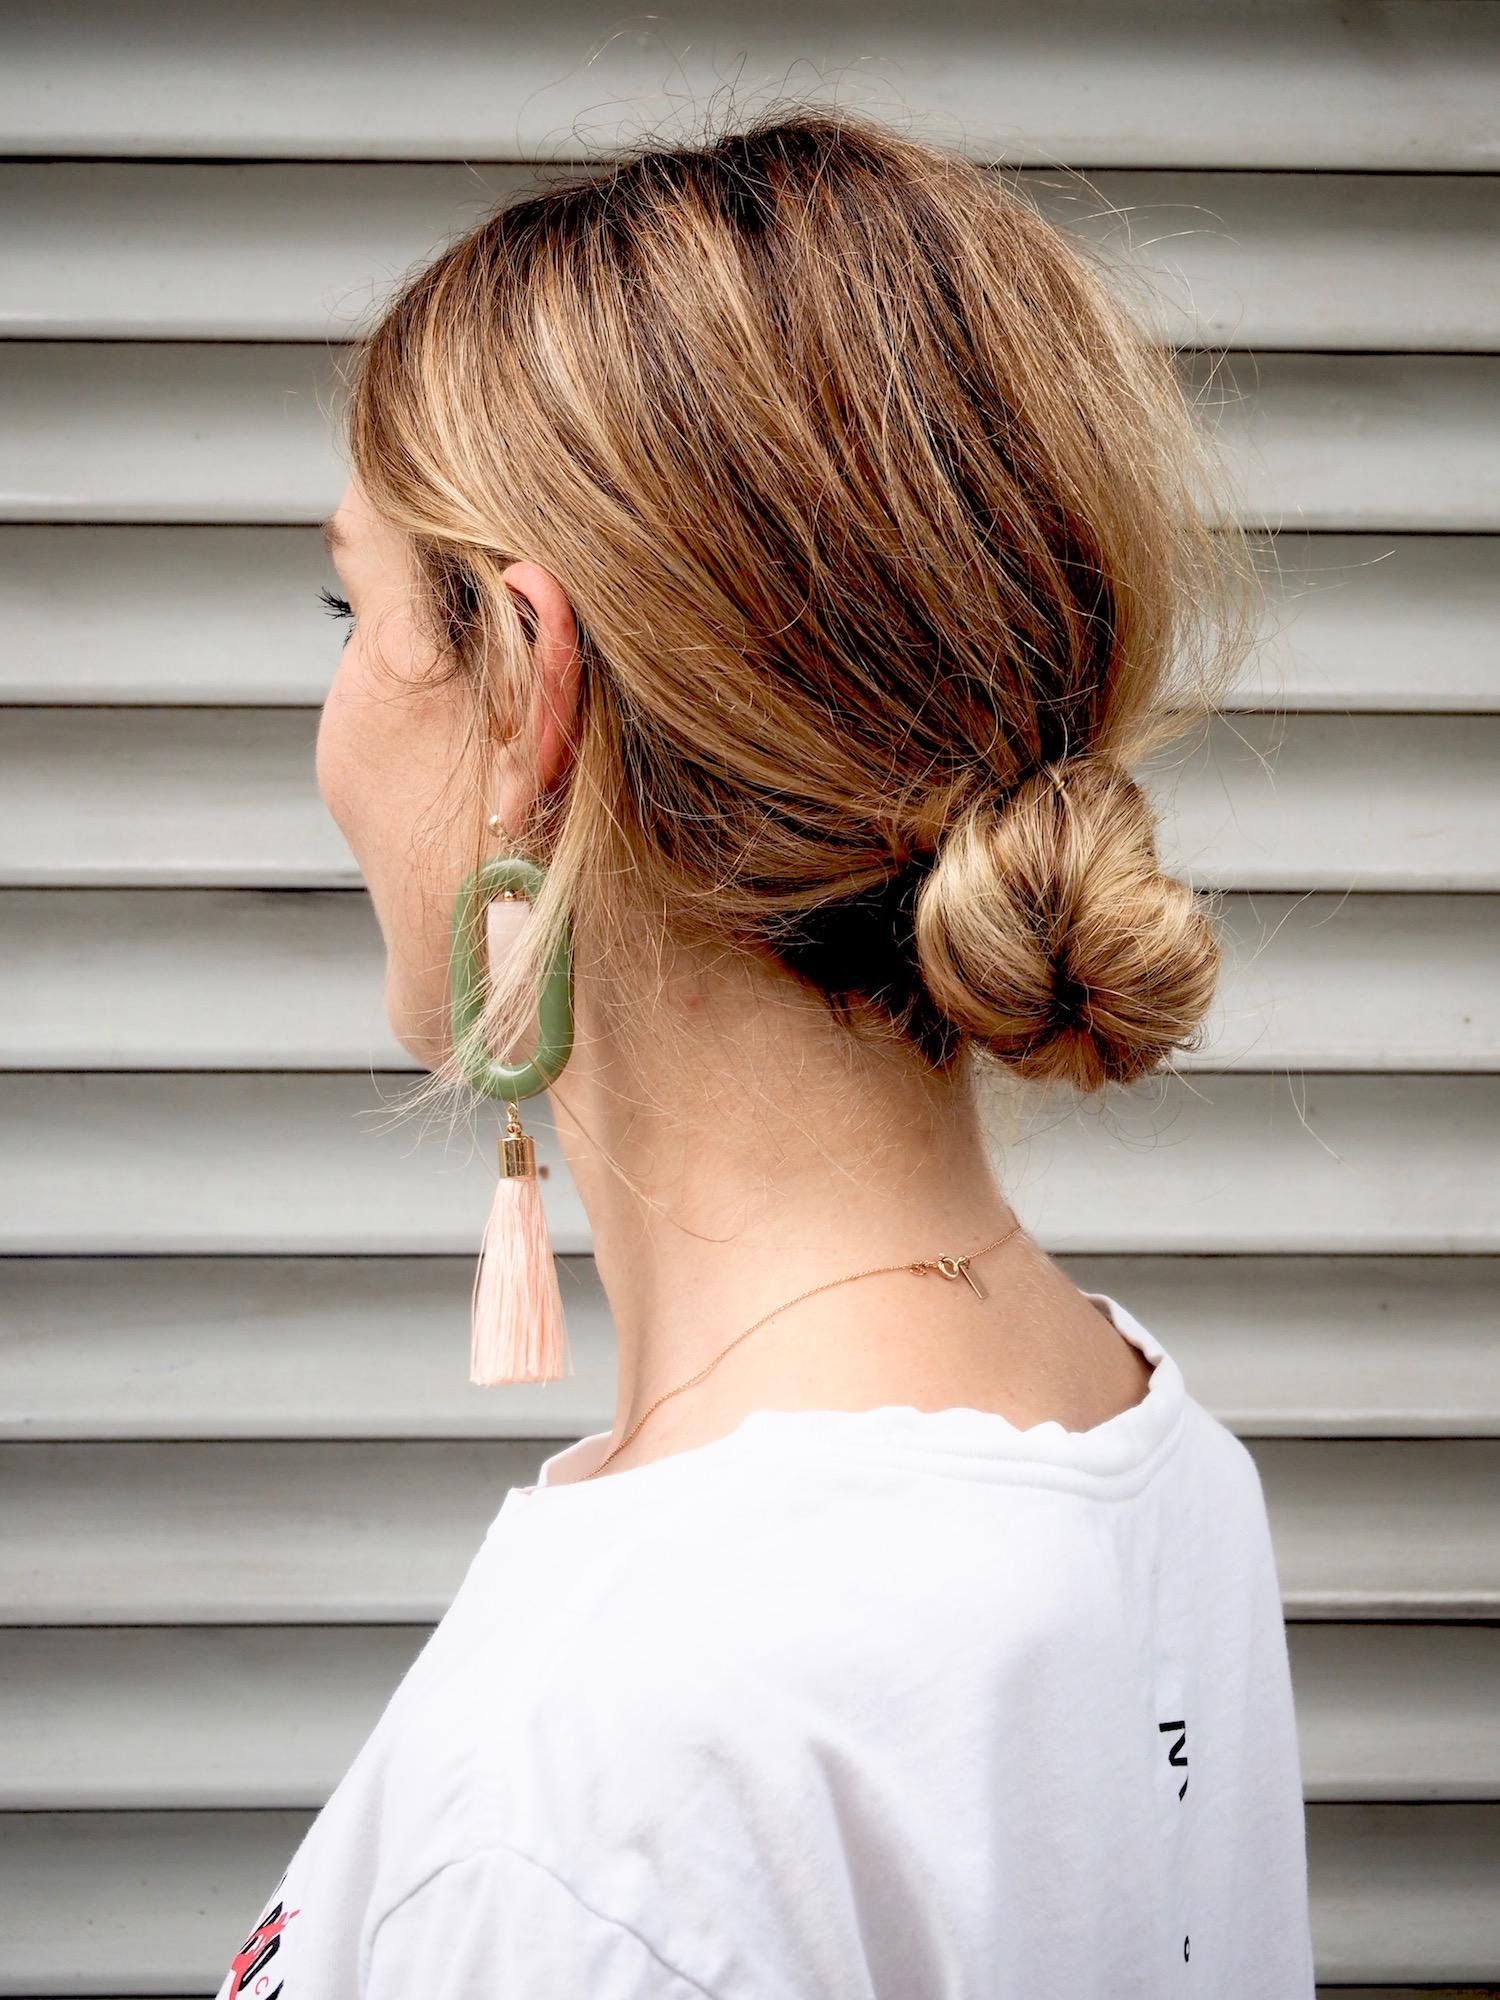 Easy peasy Knödel! #hairdo #hair #casual #frisur #bun #hairstyle